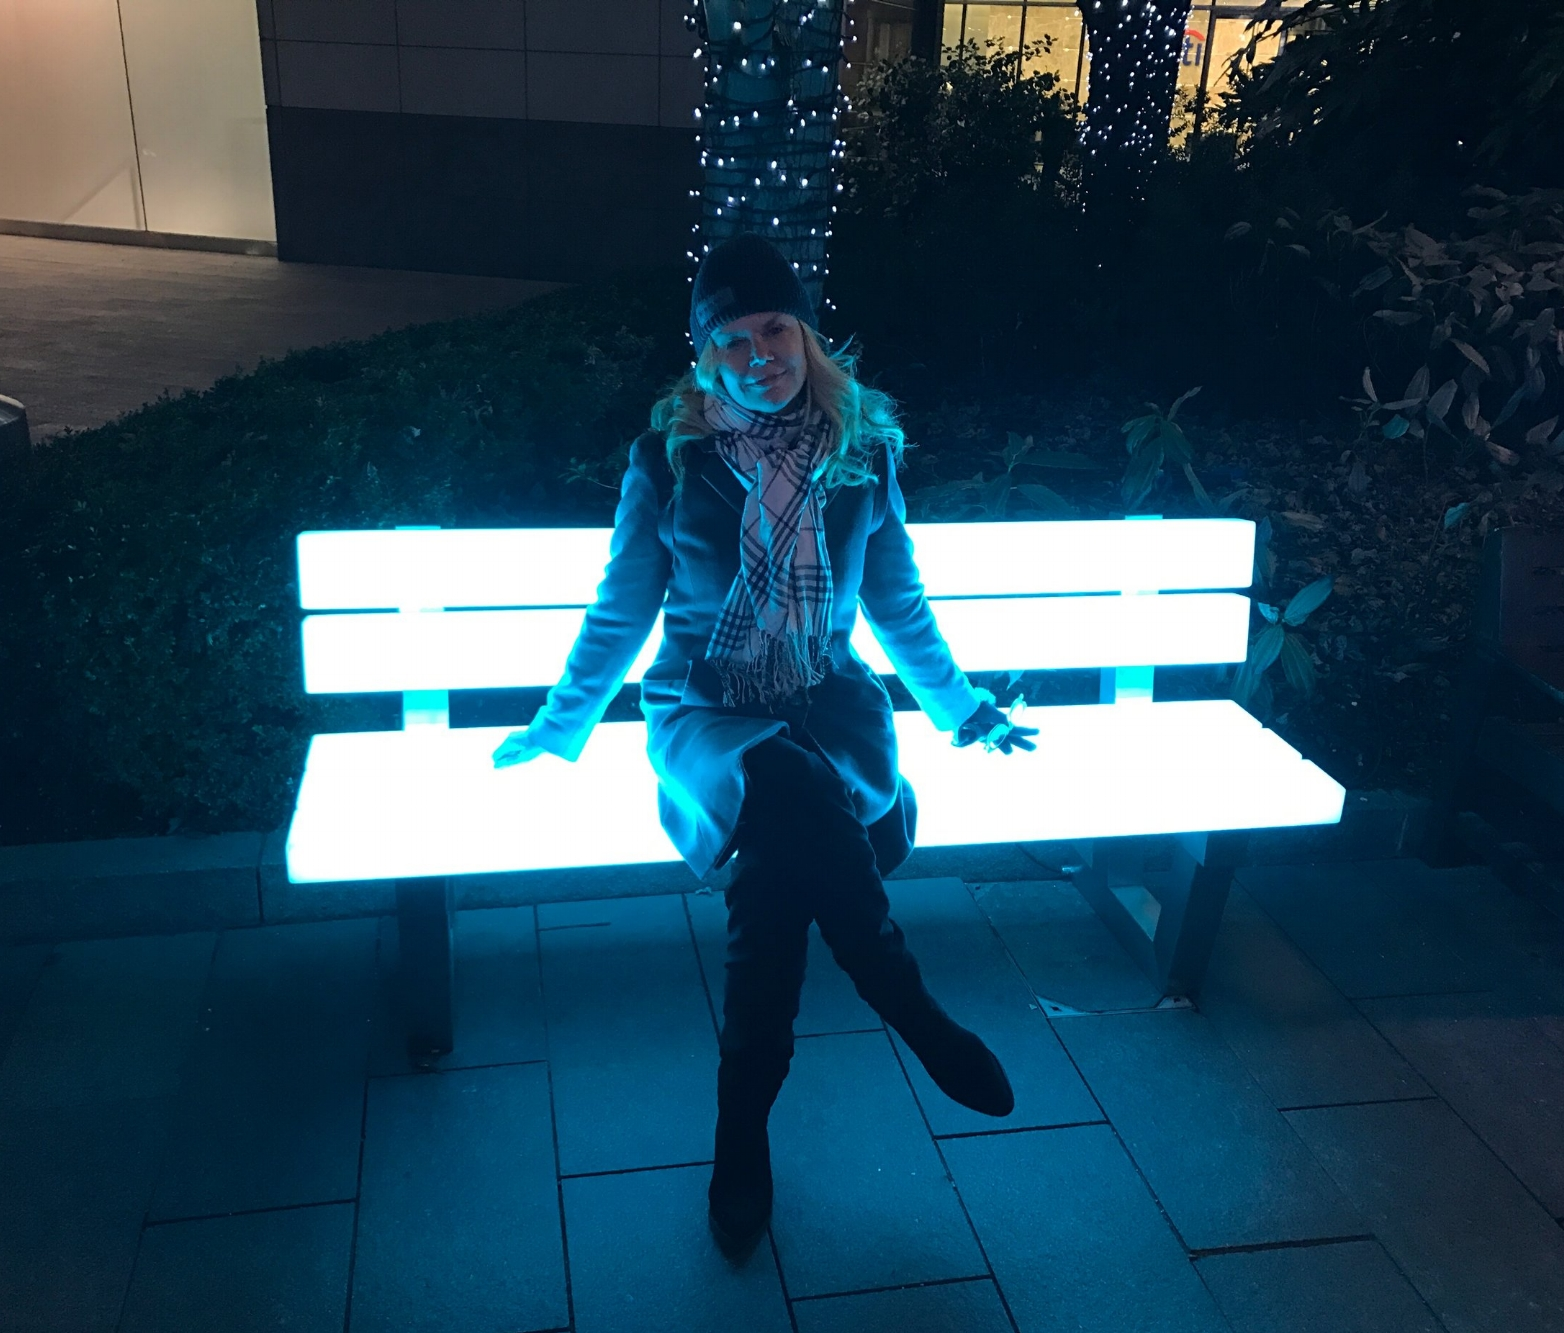 A Broad in London, Electric Bench at Winter Lights, Canary Wharf London